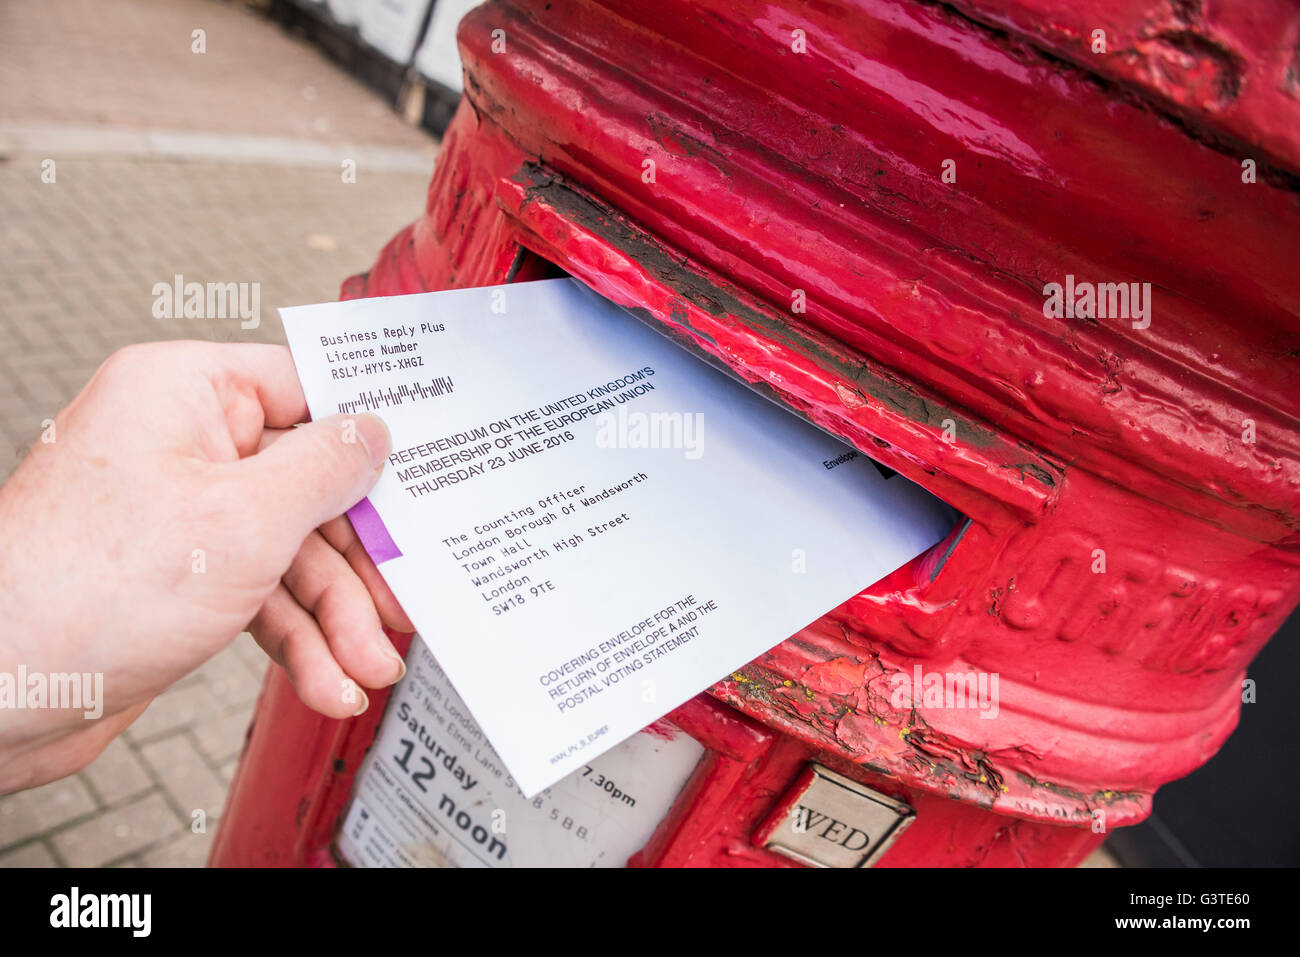 London, UK. 15th June, 2016. Posting a vote for the EU referendum in a traditional red letter box. Credit:  Guy - Stock Image